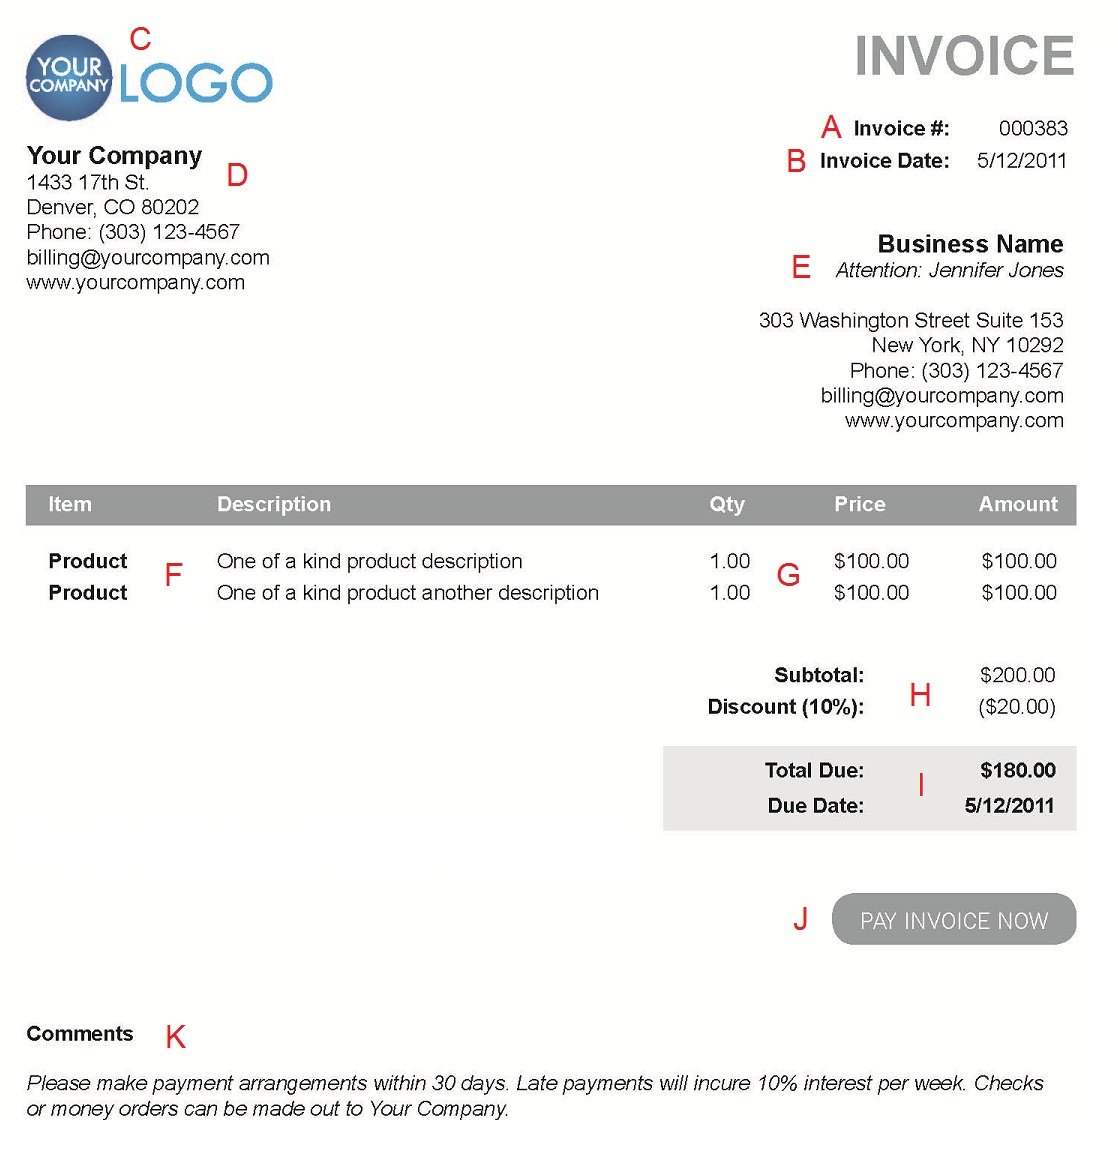 Carterusaus  Prepossessing The  Different Sections Of An Electronic Payment Invoice With Luxury A  With Beauteous Hotel Invoice Sample Also Cash Invoice Format In Word In Addition Close Invoice Finance Ltd And Invoice Not Paid What Can I Do As Well As Printable Blank Invoice Forms Additionally Caricom Invoice Template From Paysimplecom With Carterusaus  Luxury The  Different Sections Of An Electronic Payment Invoice With Beauteous A  And Prepossessing Hotel Invoice Sample Also Cash Invoice Format In Word In Addition Close Invoice Finance Ltd From Paysimplecom